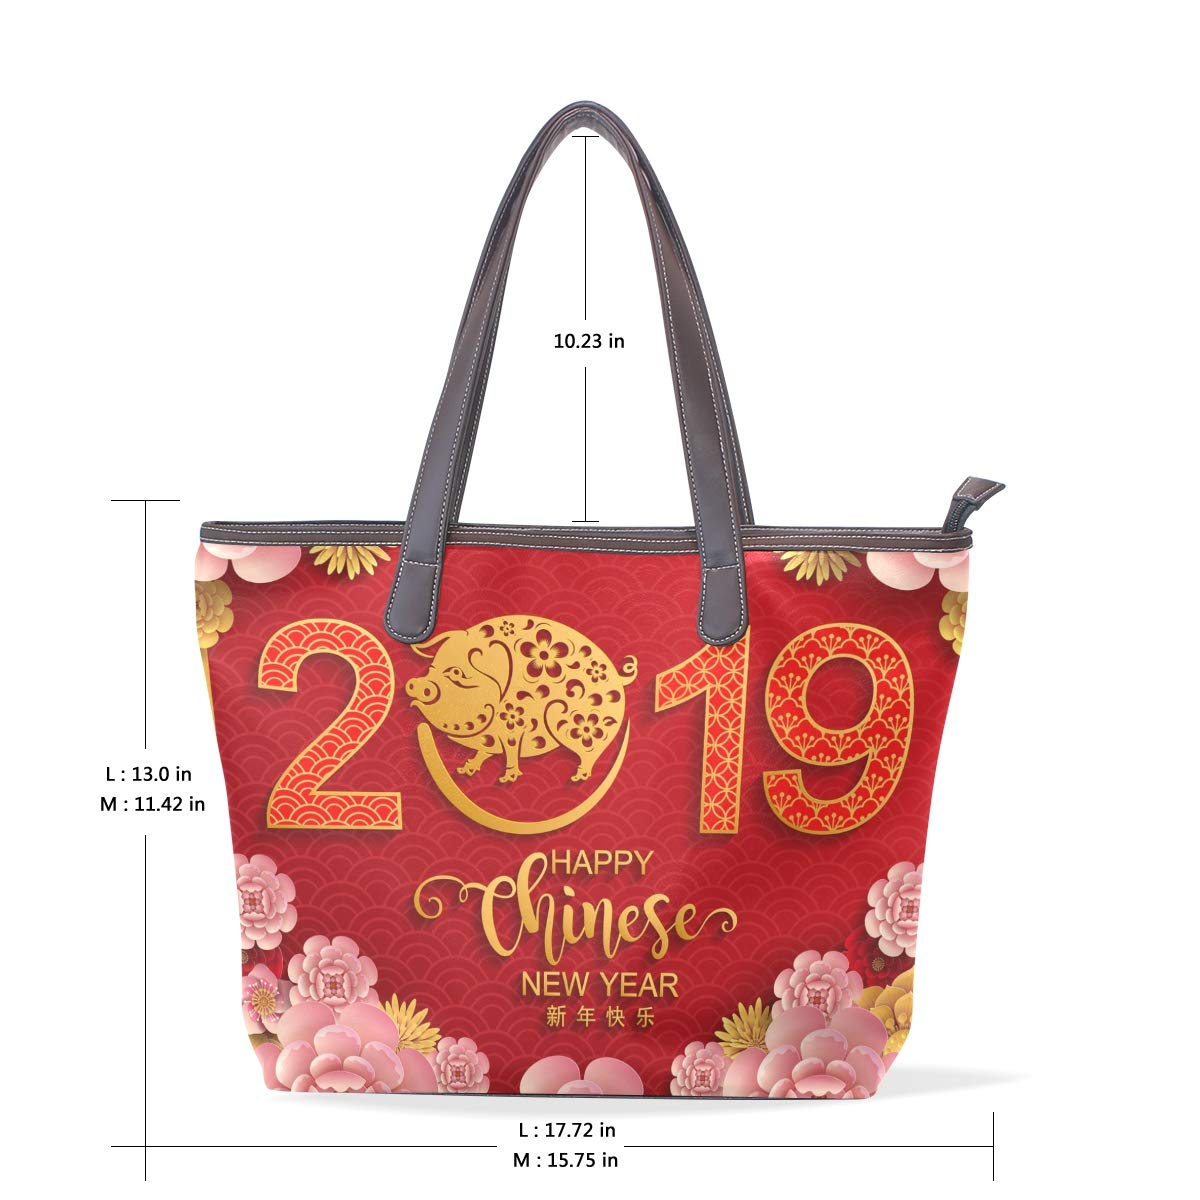 Happy Chinese New Year 2019 Of The Pig Womens Fashion Large Shoulder Bag Handbag Tote Purse for Lady